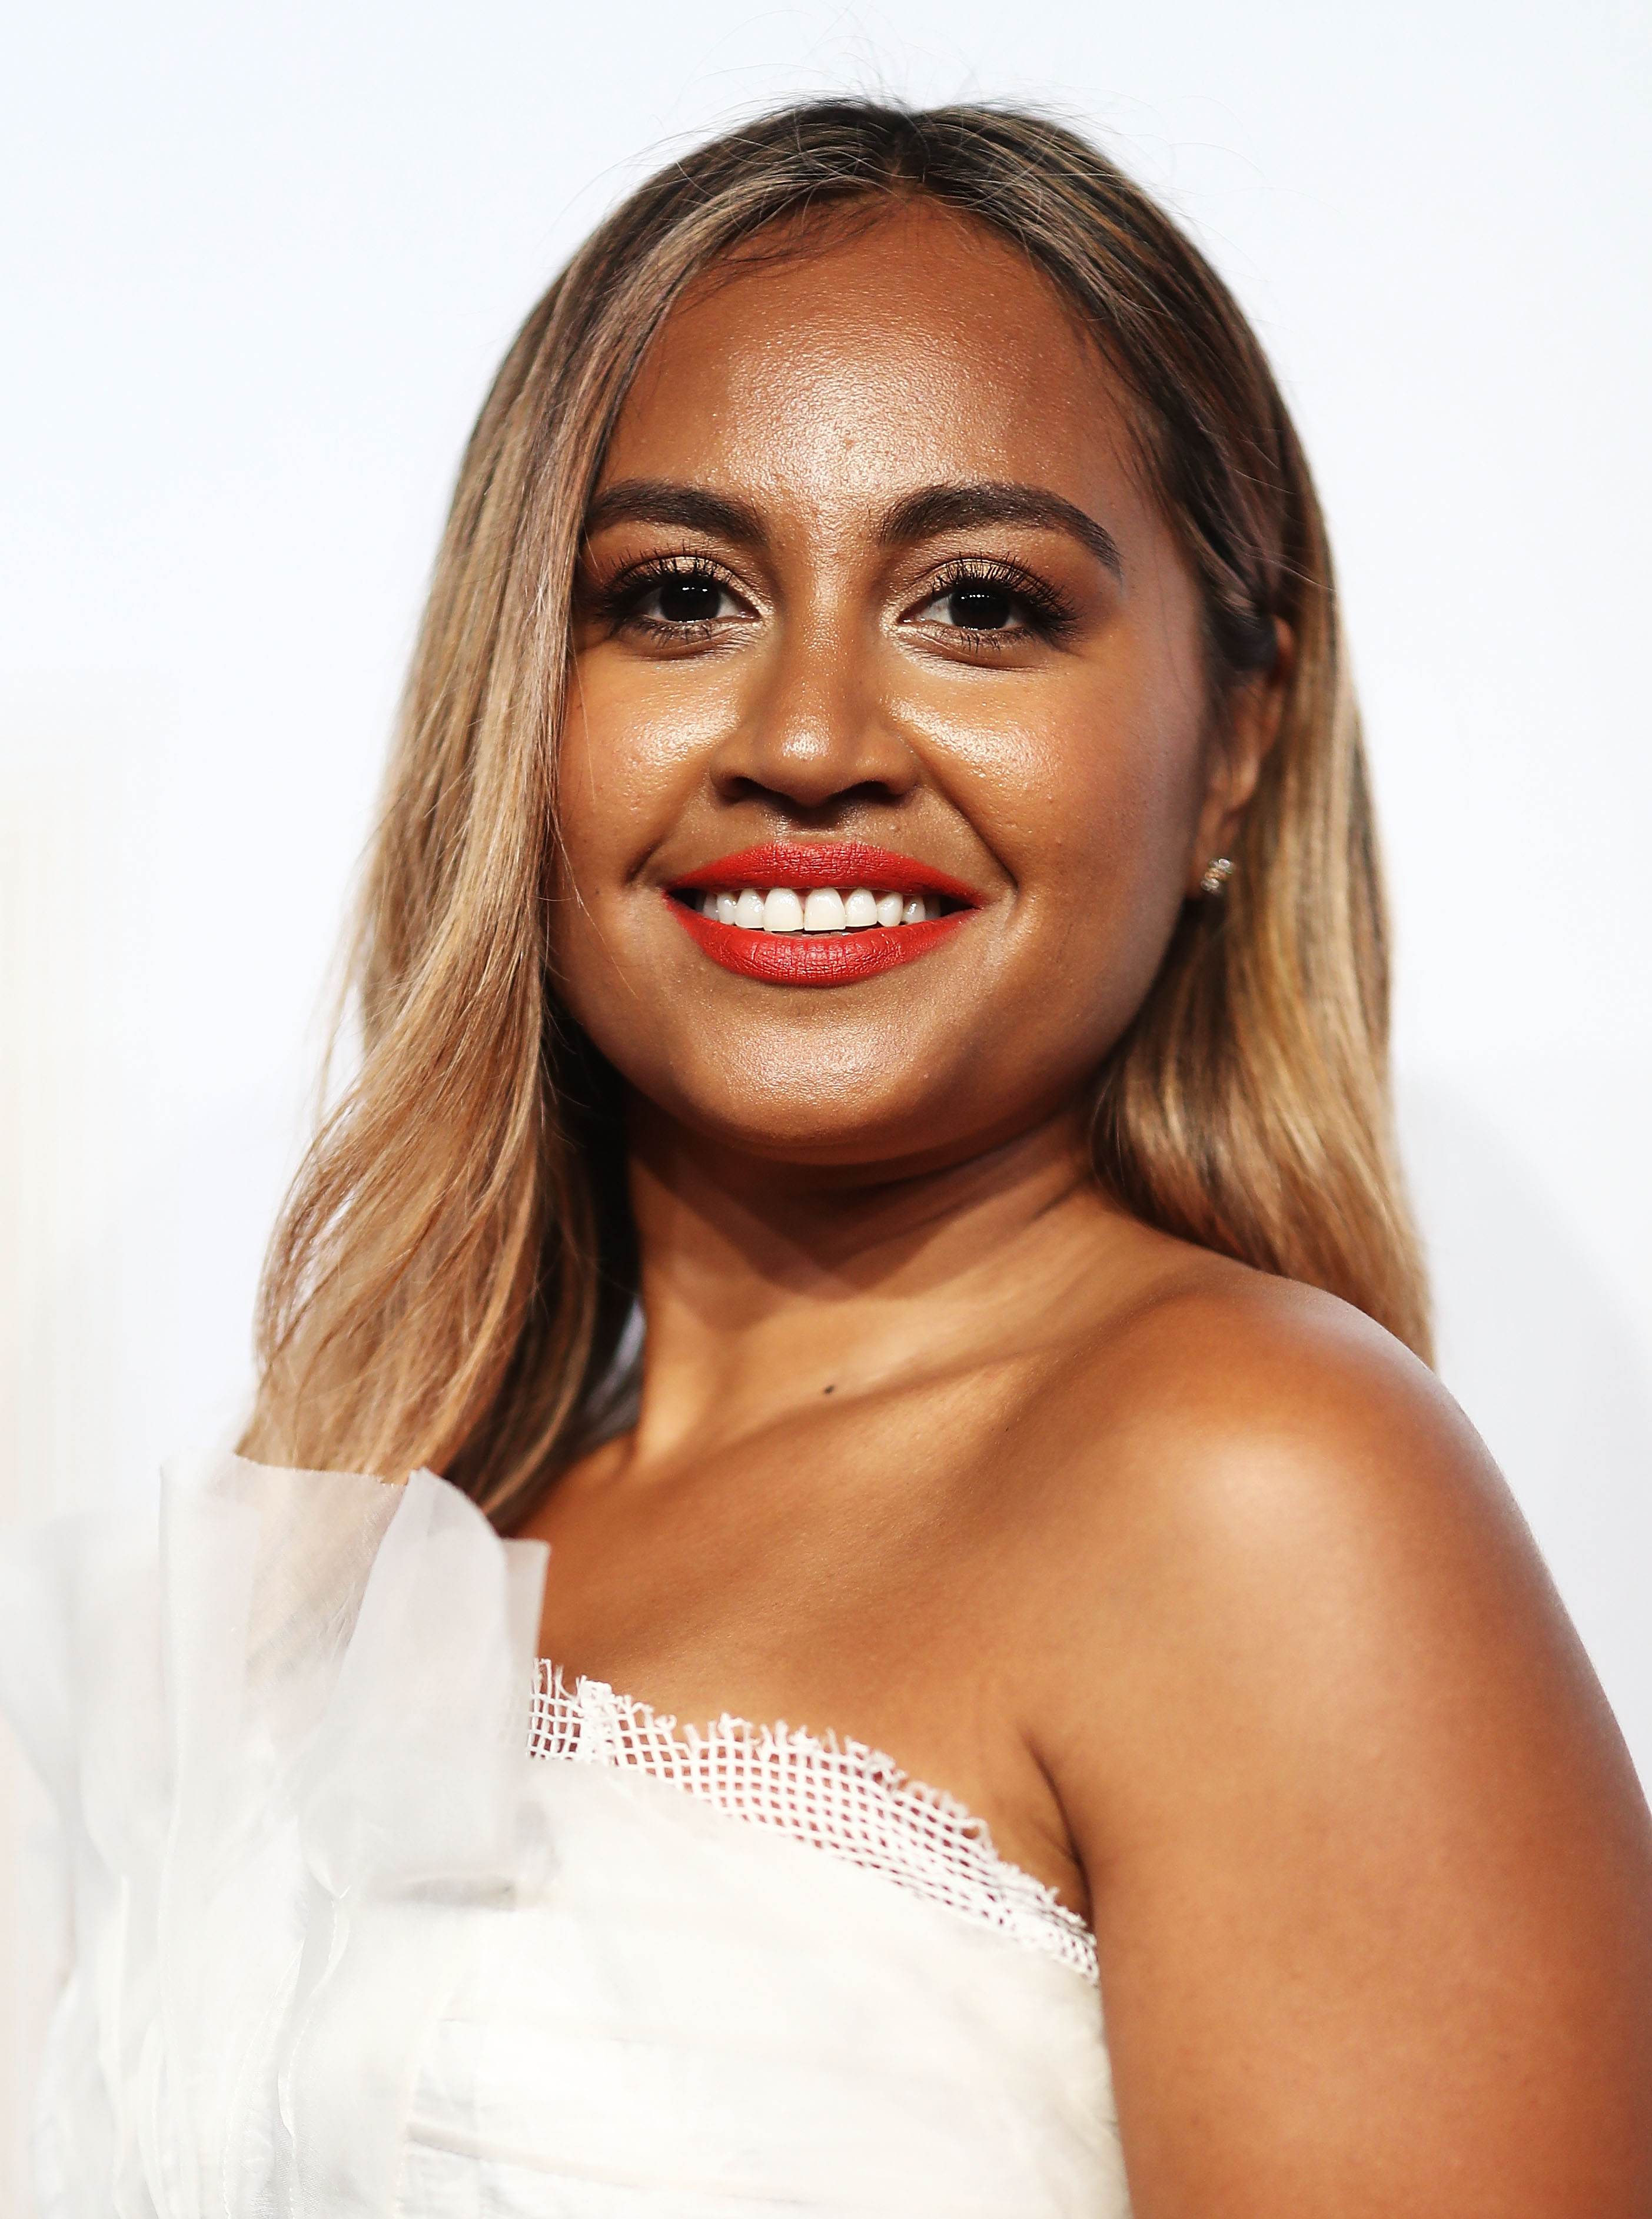 "<p><a href=""https://style.nine.com.au/jessica-mauboy"" target=""_blank"">Singer Jessica Mauboy </a>has come a long way since her days as young aspiring singer on Australian Idol.</p> <p> The 27-year-old has evolved into an acclaimed solo artist and bona fide bombshell over the past decade.</p> <p>As the  breakout star of the 2006 season of reality TV hit <em>Australian Idol</em> Jessica's   beauty looks consisted of dark, heavy eye shadow and thick, long locks. </p> <p>Later evolving into a beauty risk-taker, the singer has rocked everything from a bold, bright red -lip at this year's TV Week Logie Awards, to sleek honey-coloured locks at last year's ARIA Awards where she made history as the first indigenous artist to reach no.1 on the charts. </p> <p>Click through to see Jessica Mauboy's beauty evolution.<br style=""box-sizing: border-box;"" /> </p>"